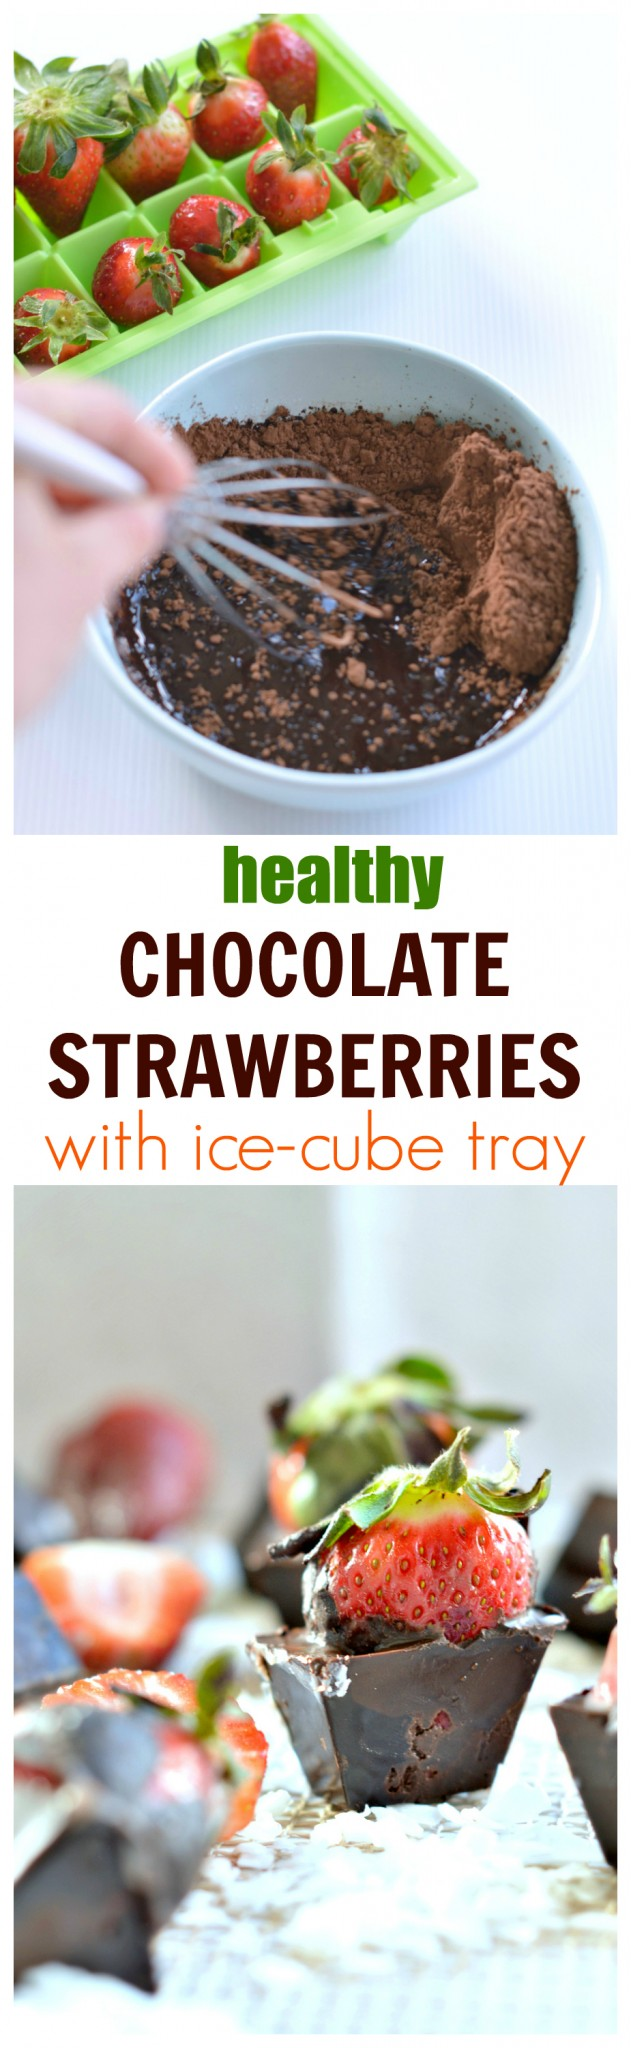 chocolate covered strawberries with ice cubes tray